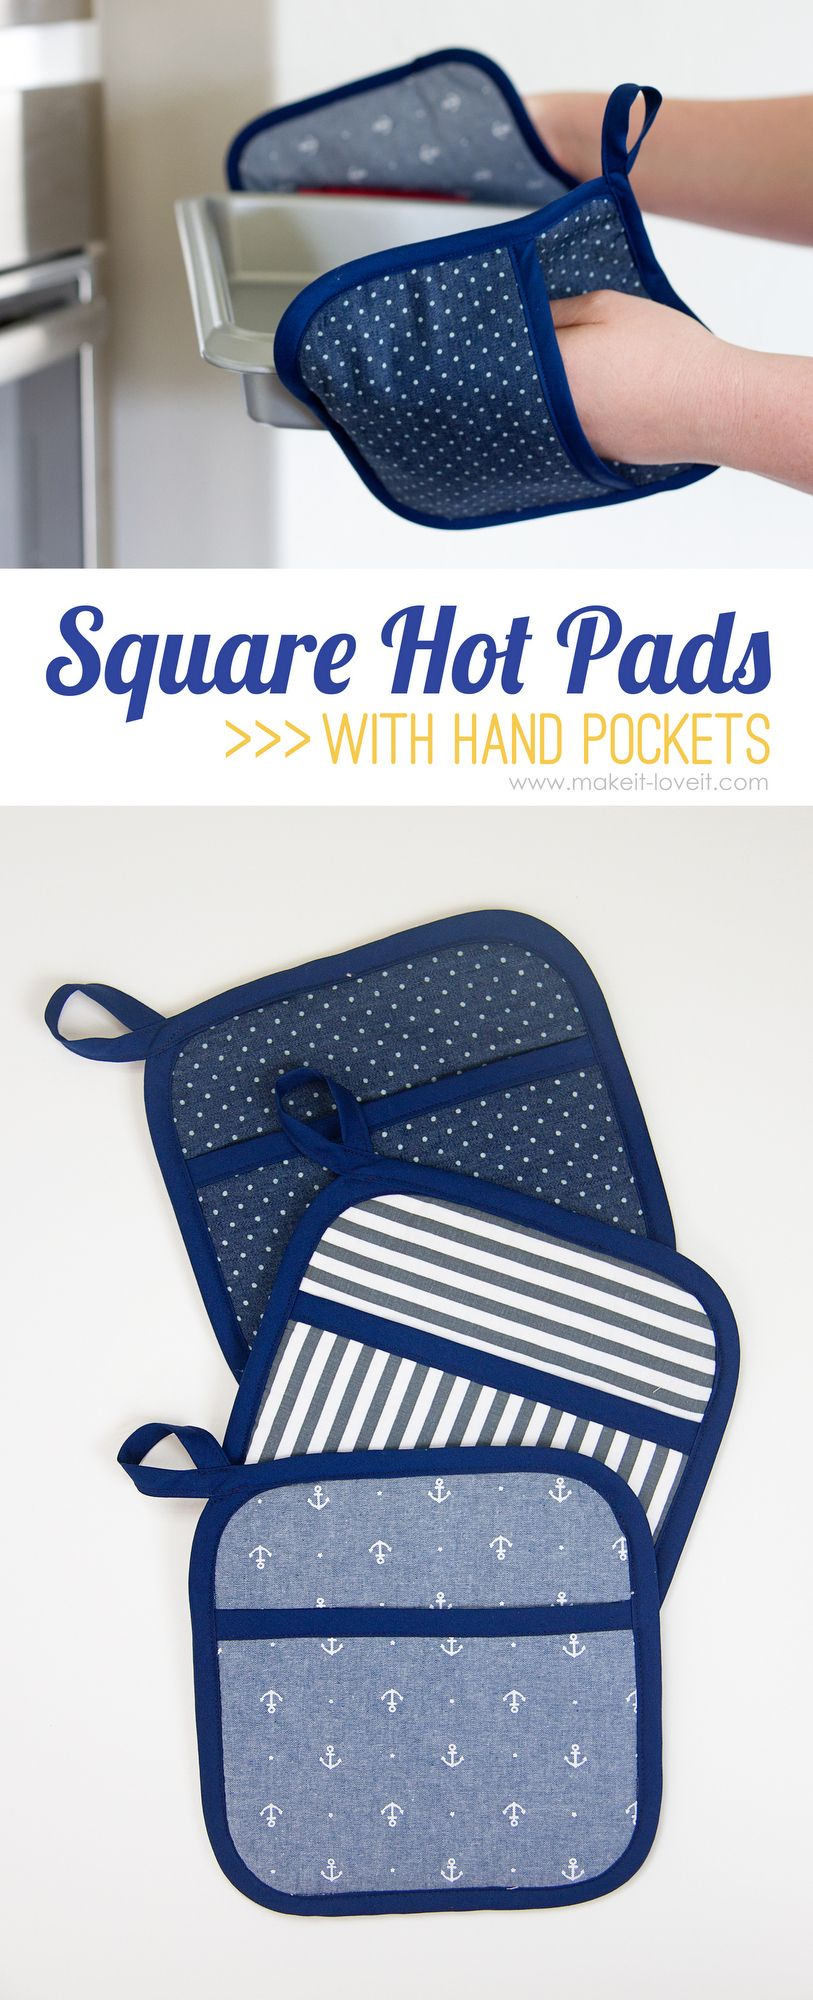 Square Hot Pads with Hand Pockets | Pinterest | Squares, Sewing ...